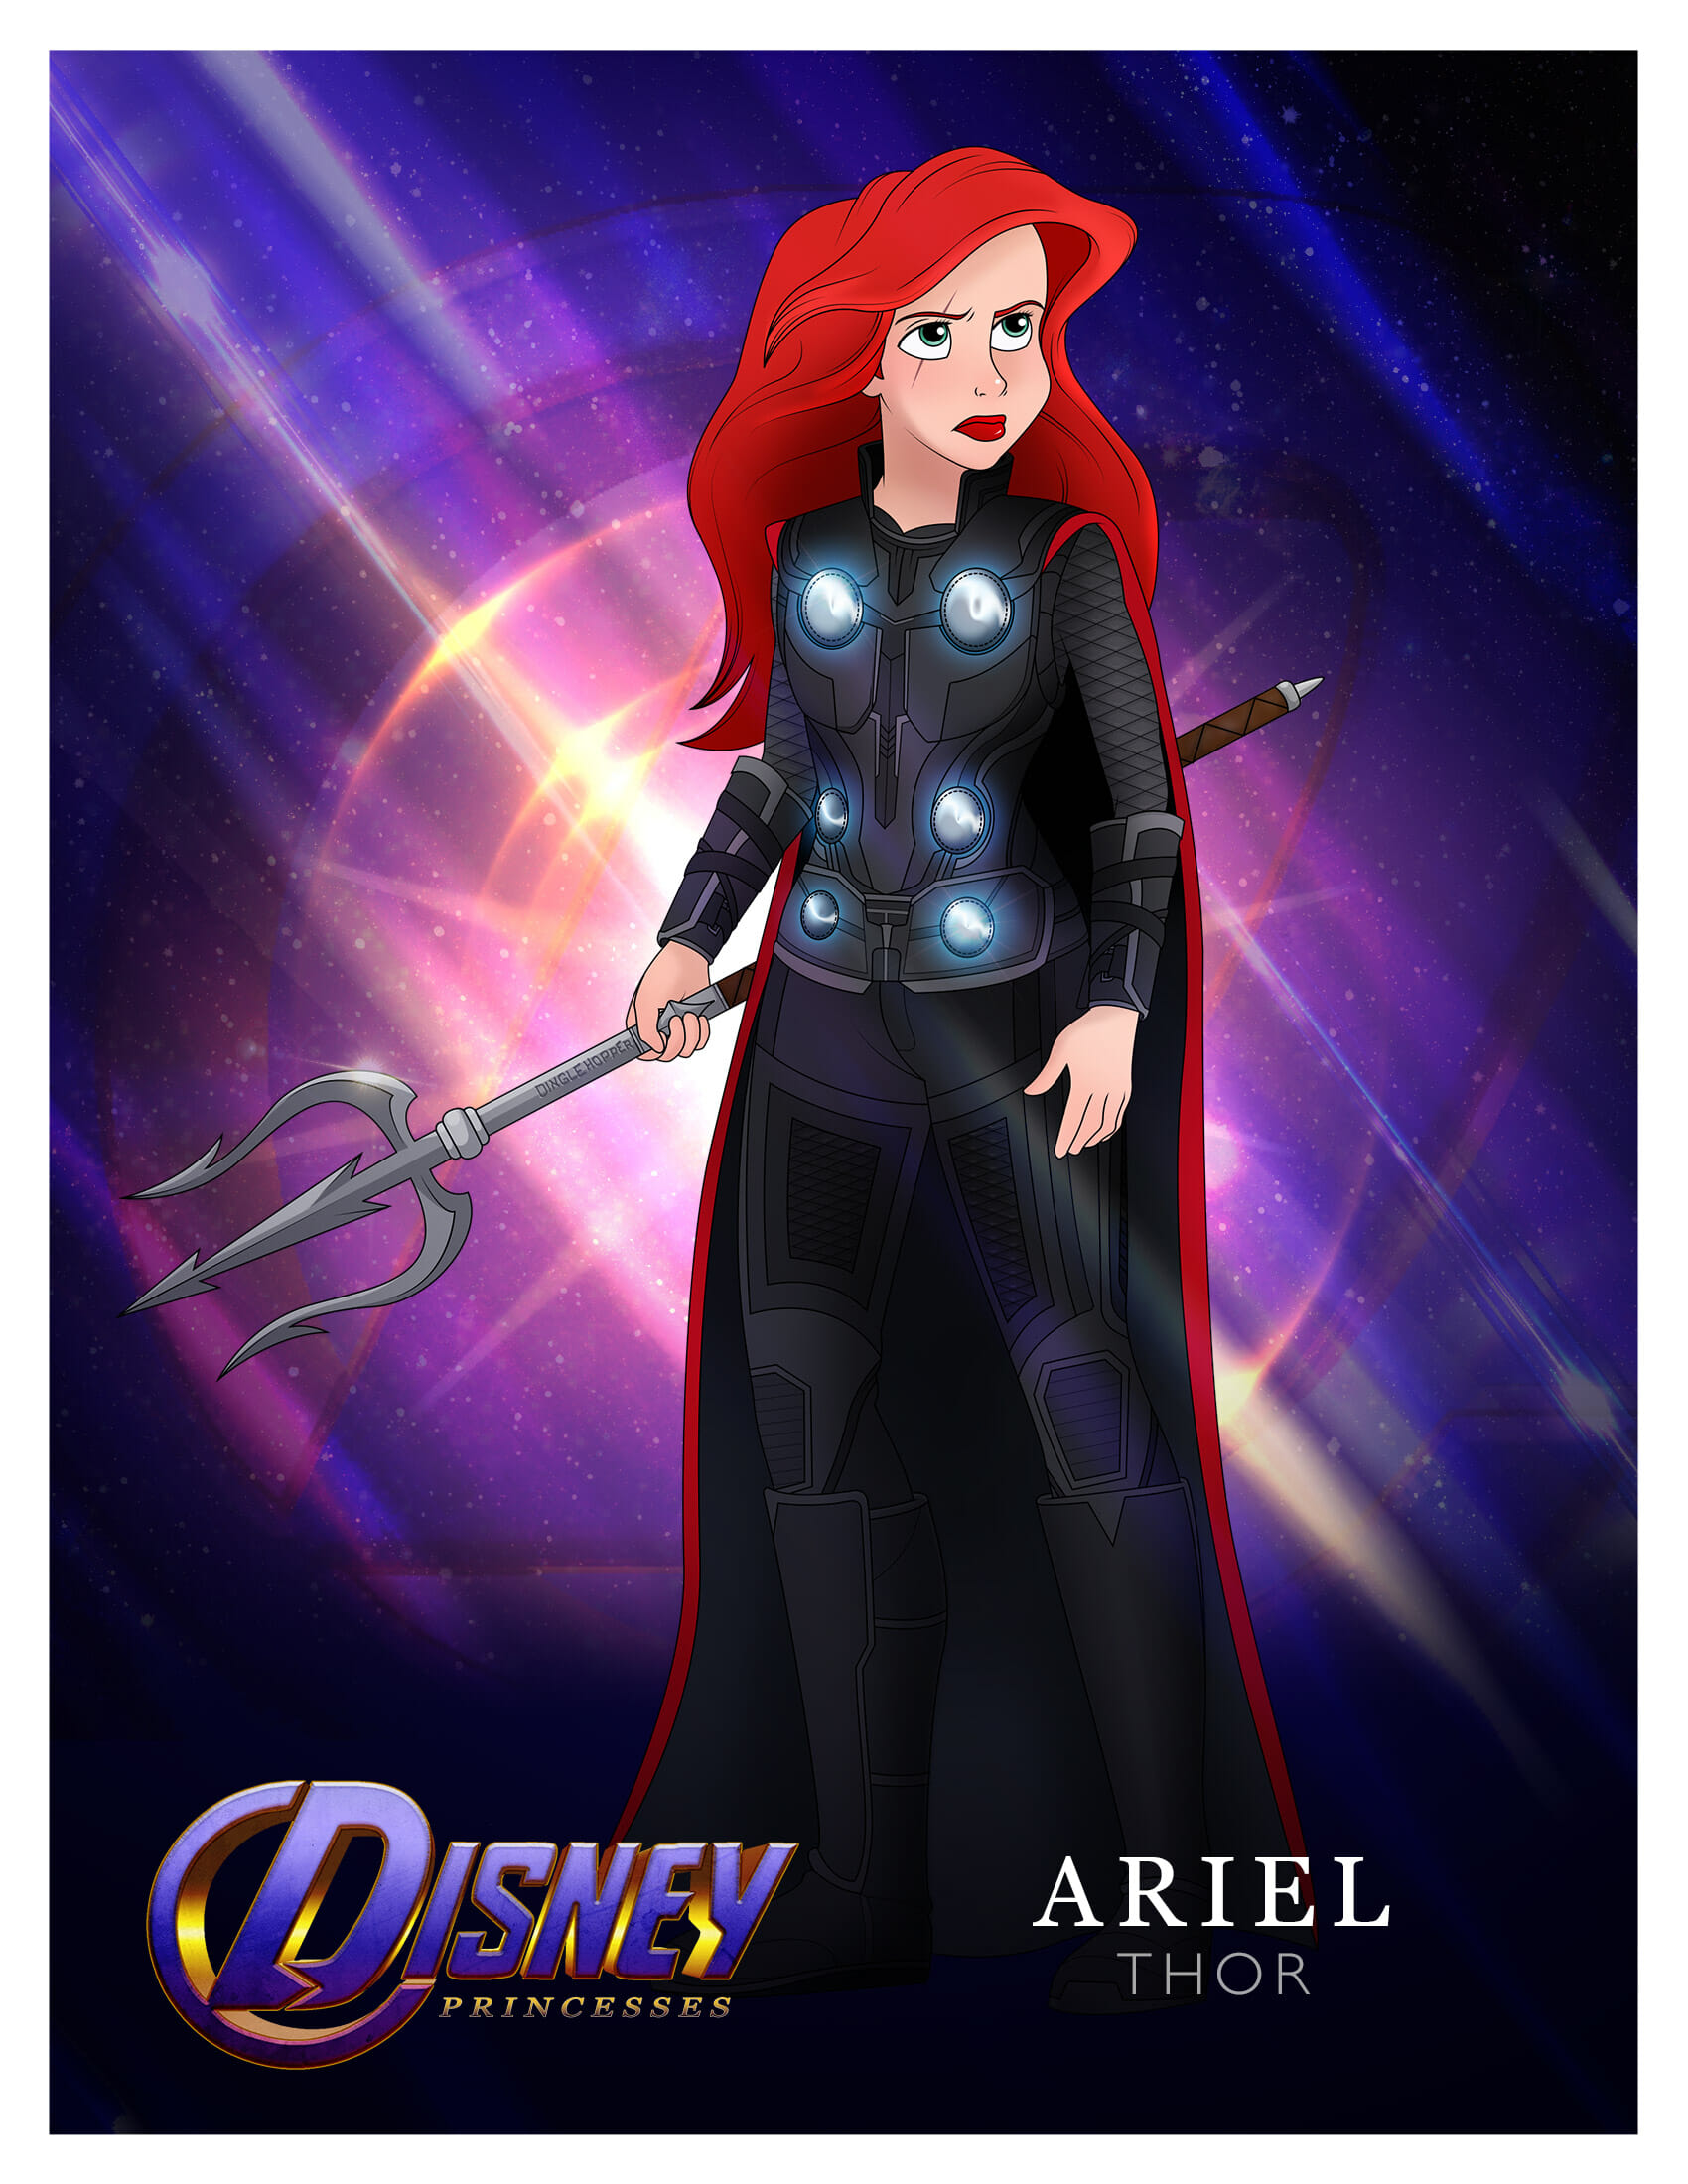 Princess Ariel as Thor